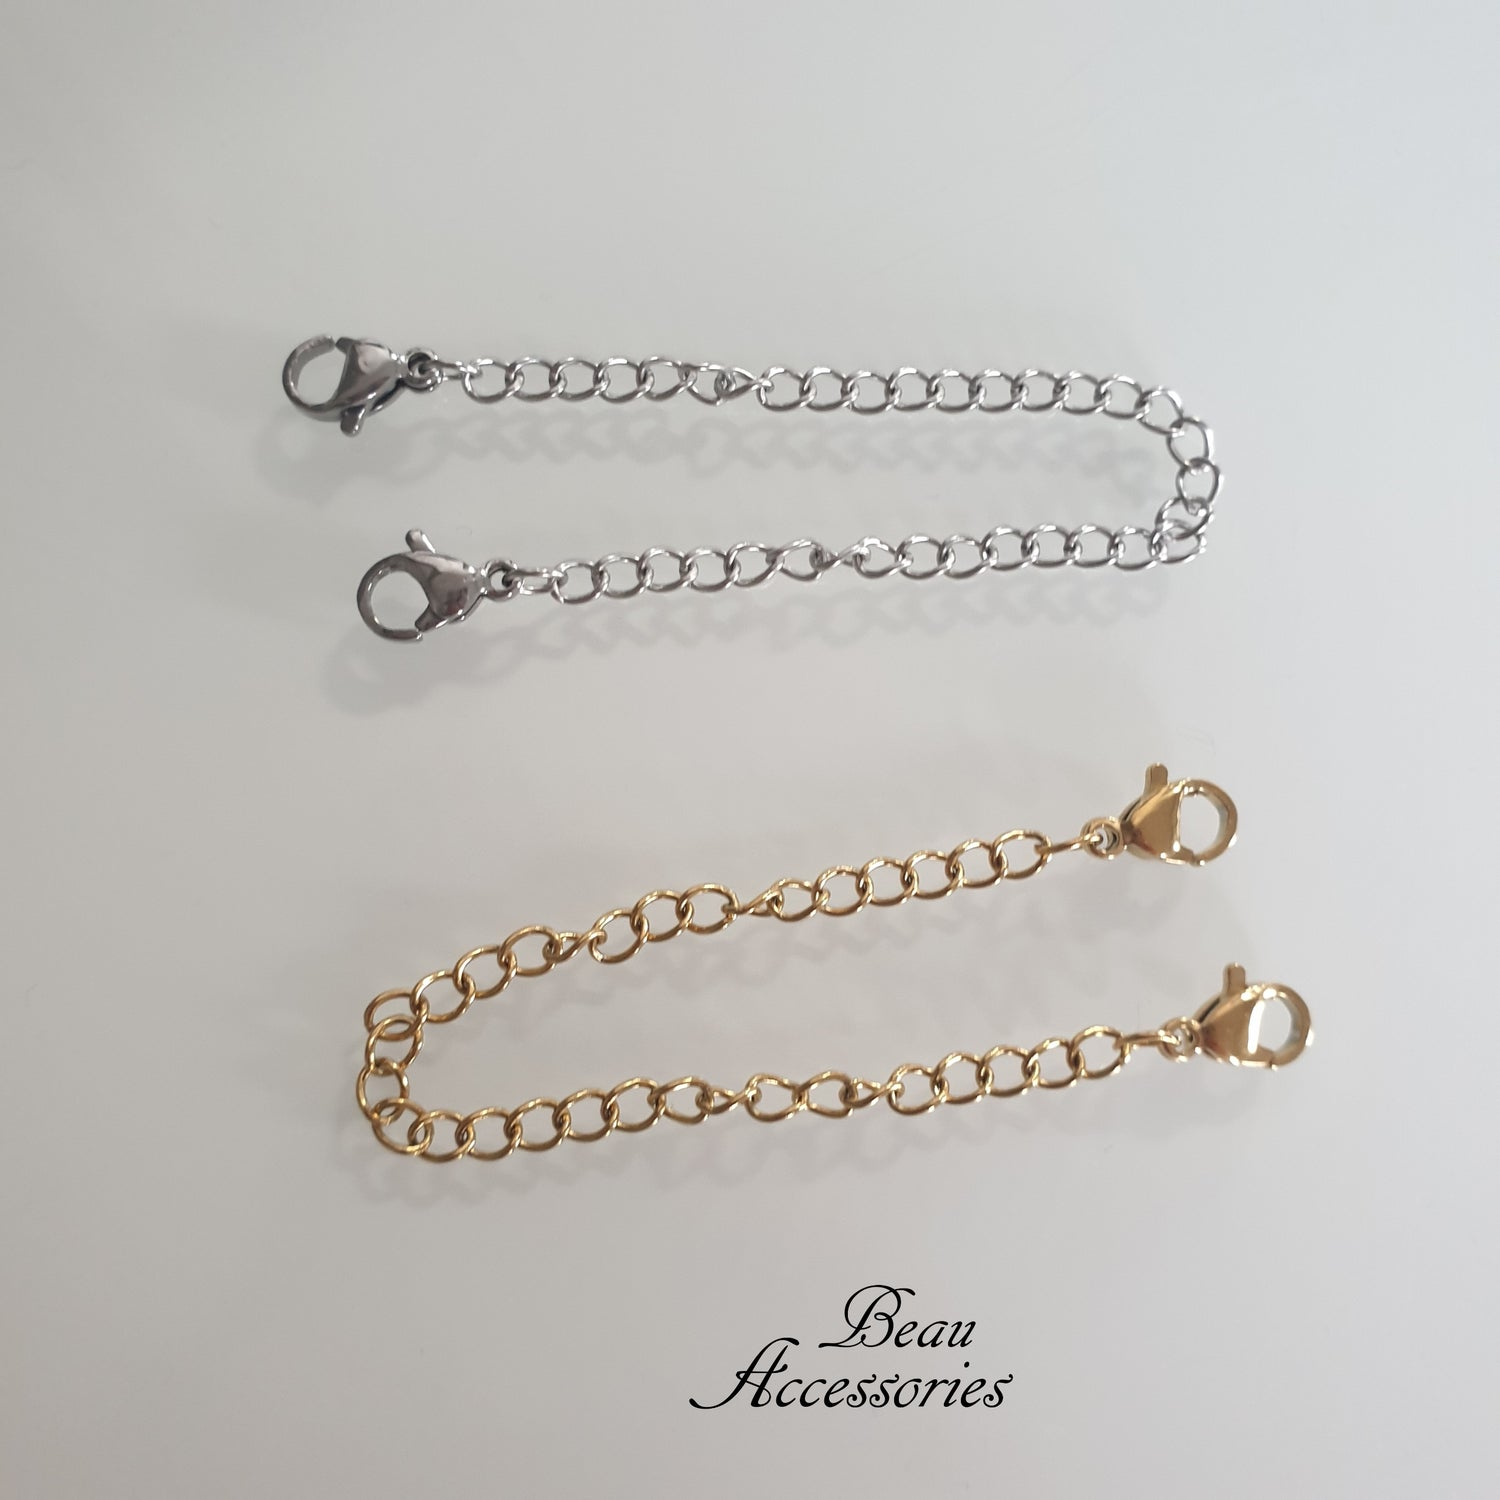 Image of Double Clasp Necklace Extender